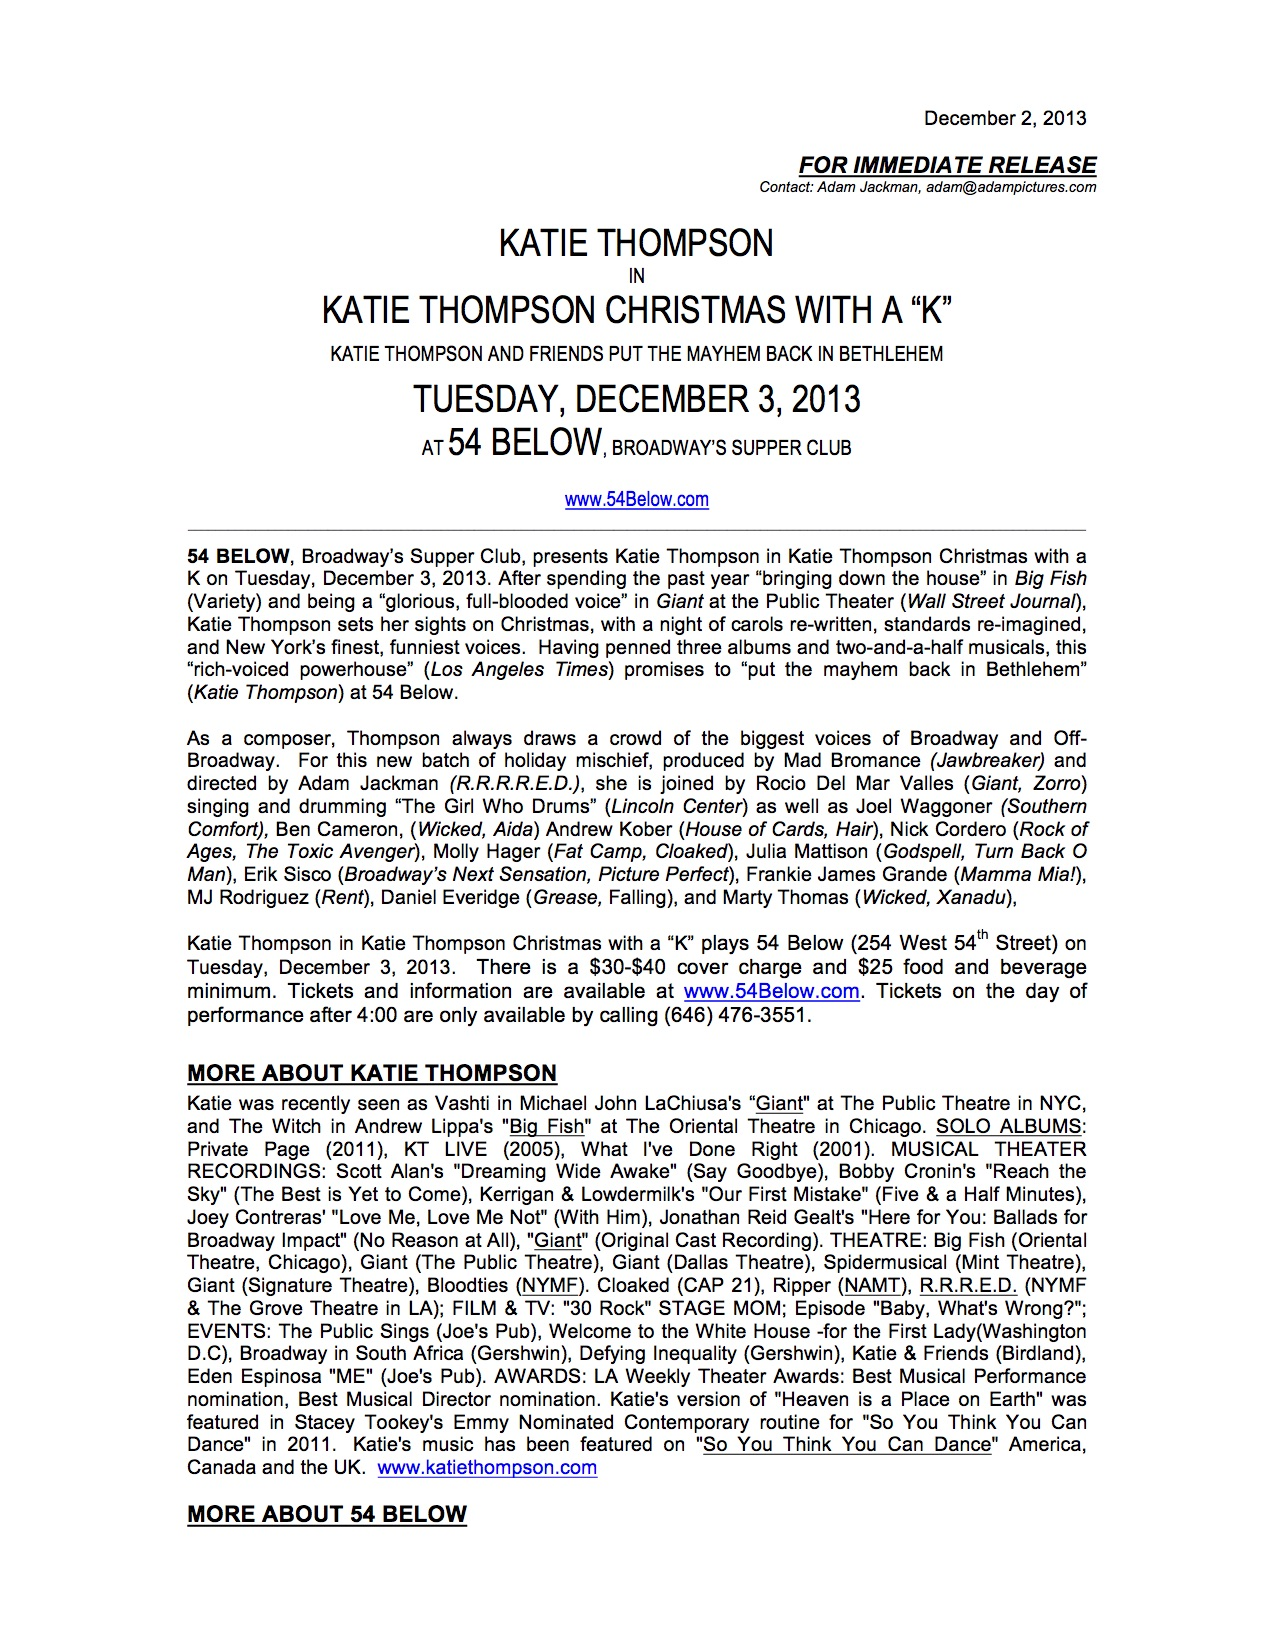 Press Release for Katie Thompson Christmas with a K-02Dec2013 page 1.jpg